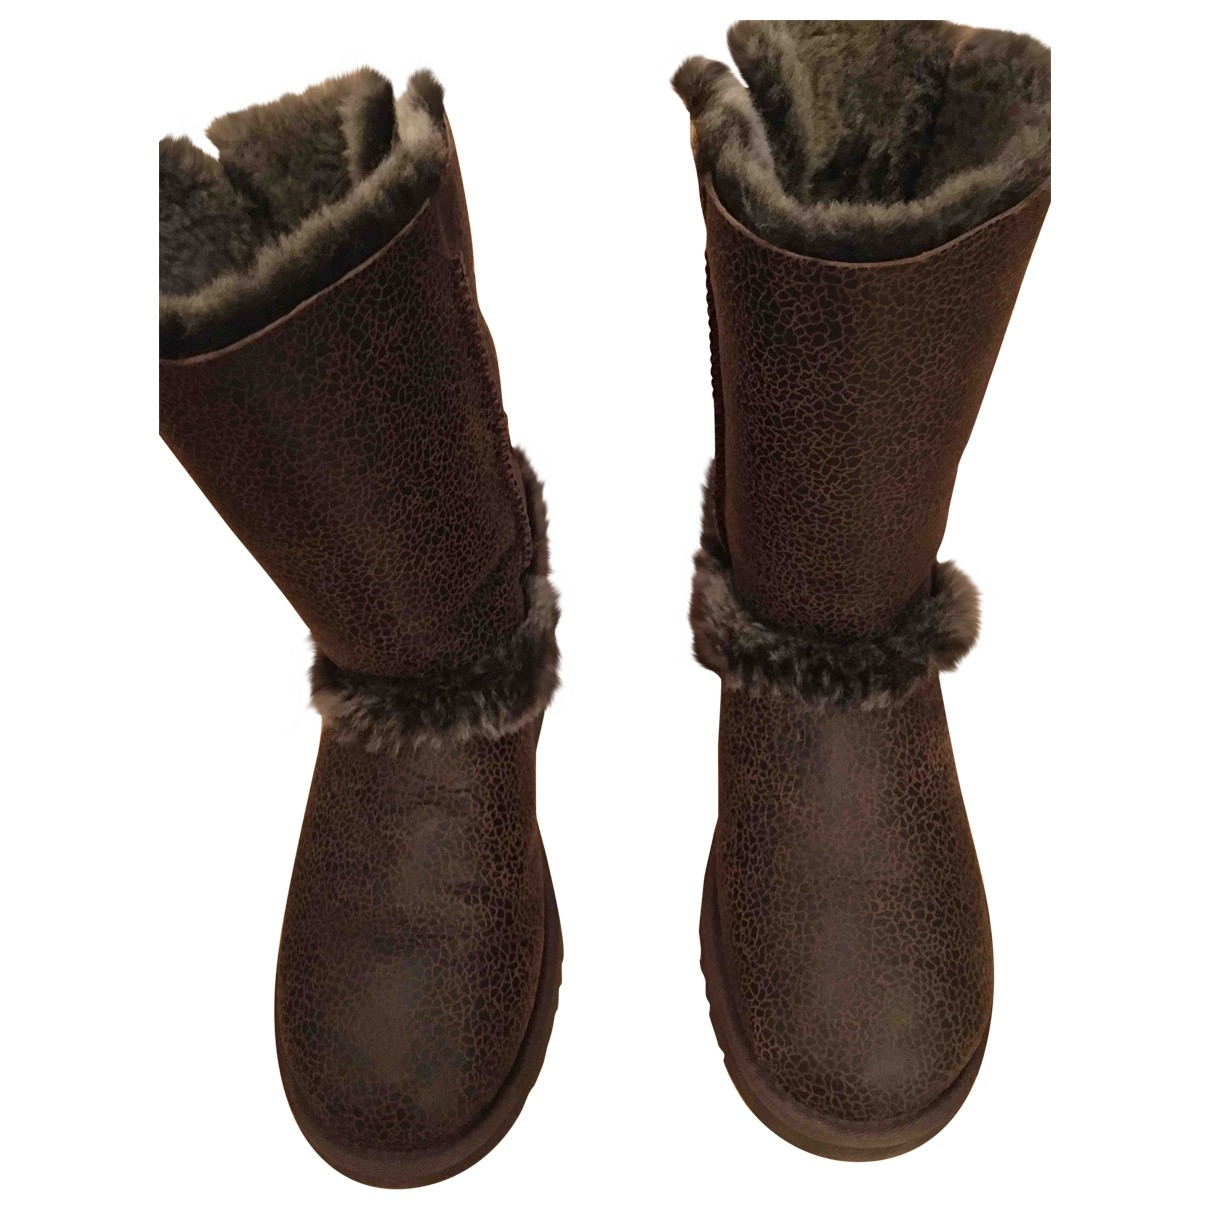 Ugg \N Brown Leather Boots for Women 9 US